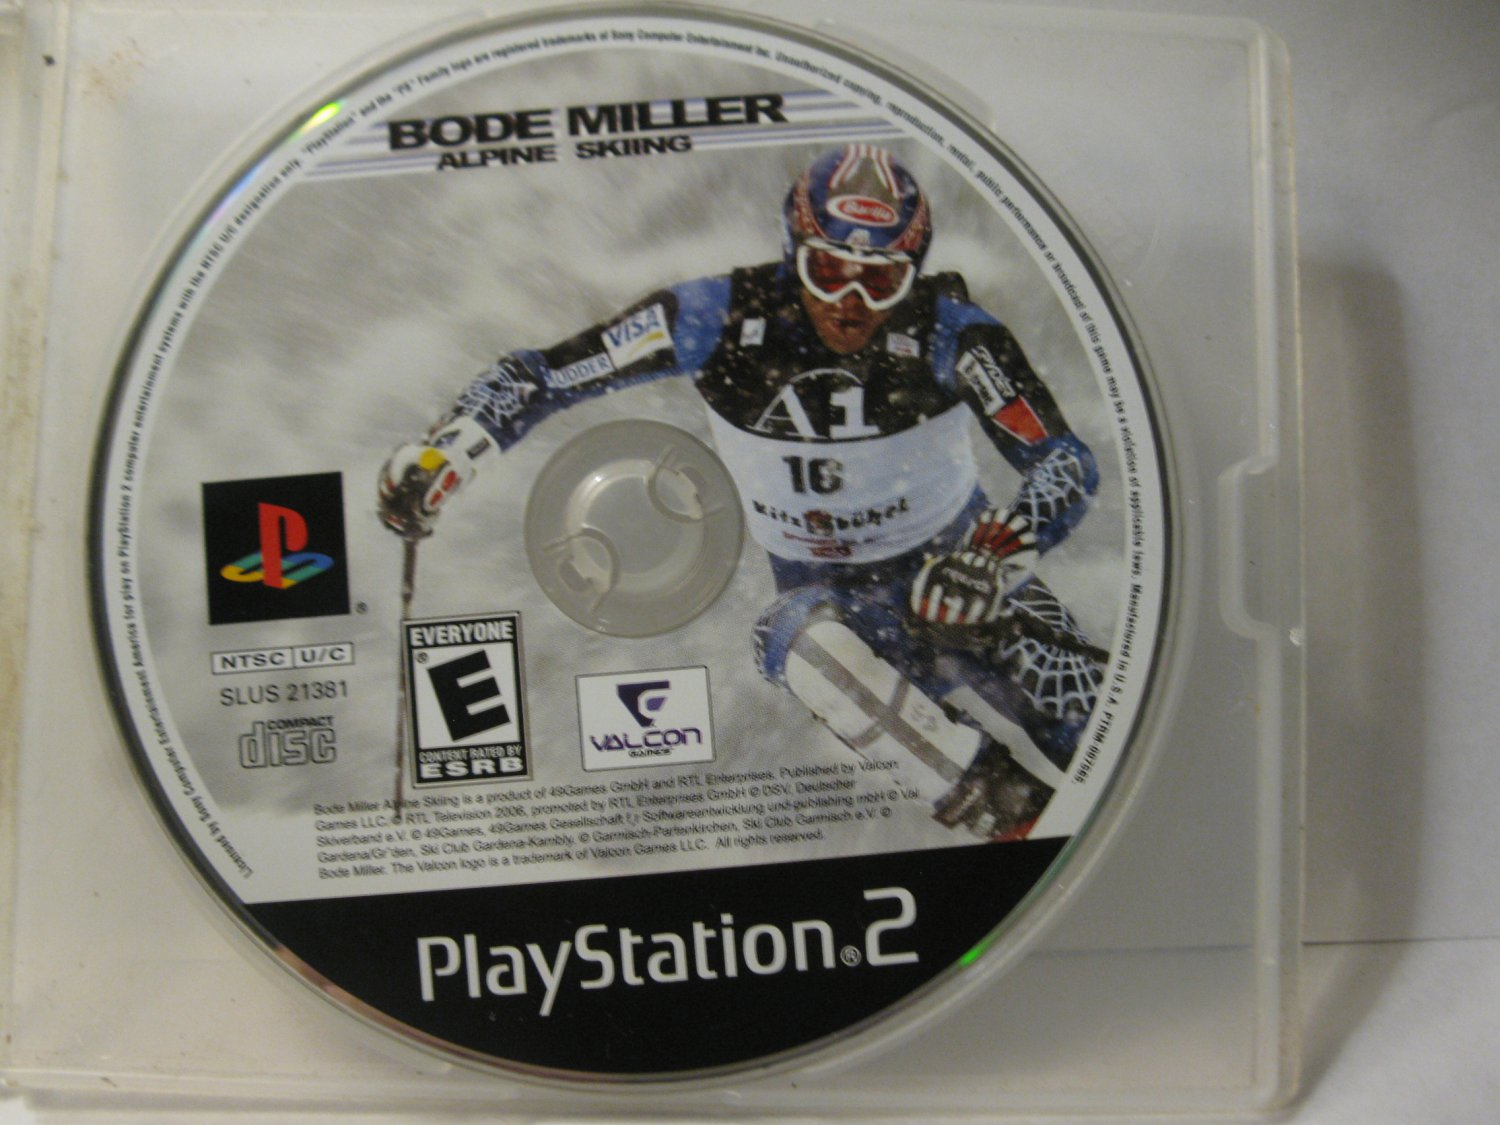 Playstation 2 / PS2 Video Game: Bode Miller - Alpine Skiing